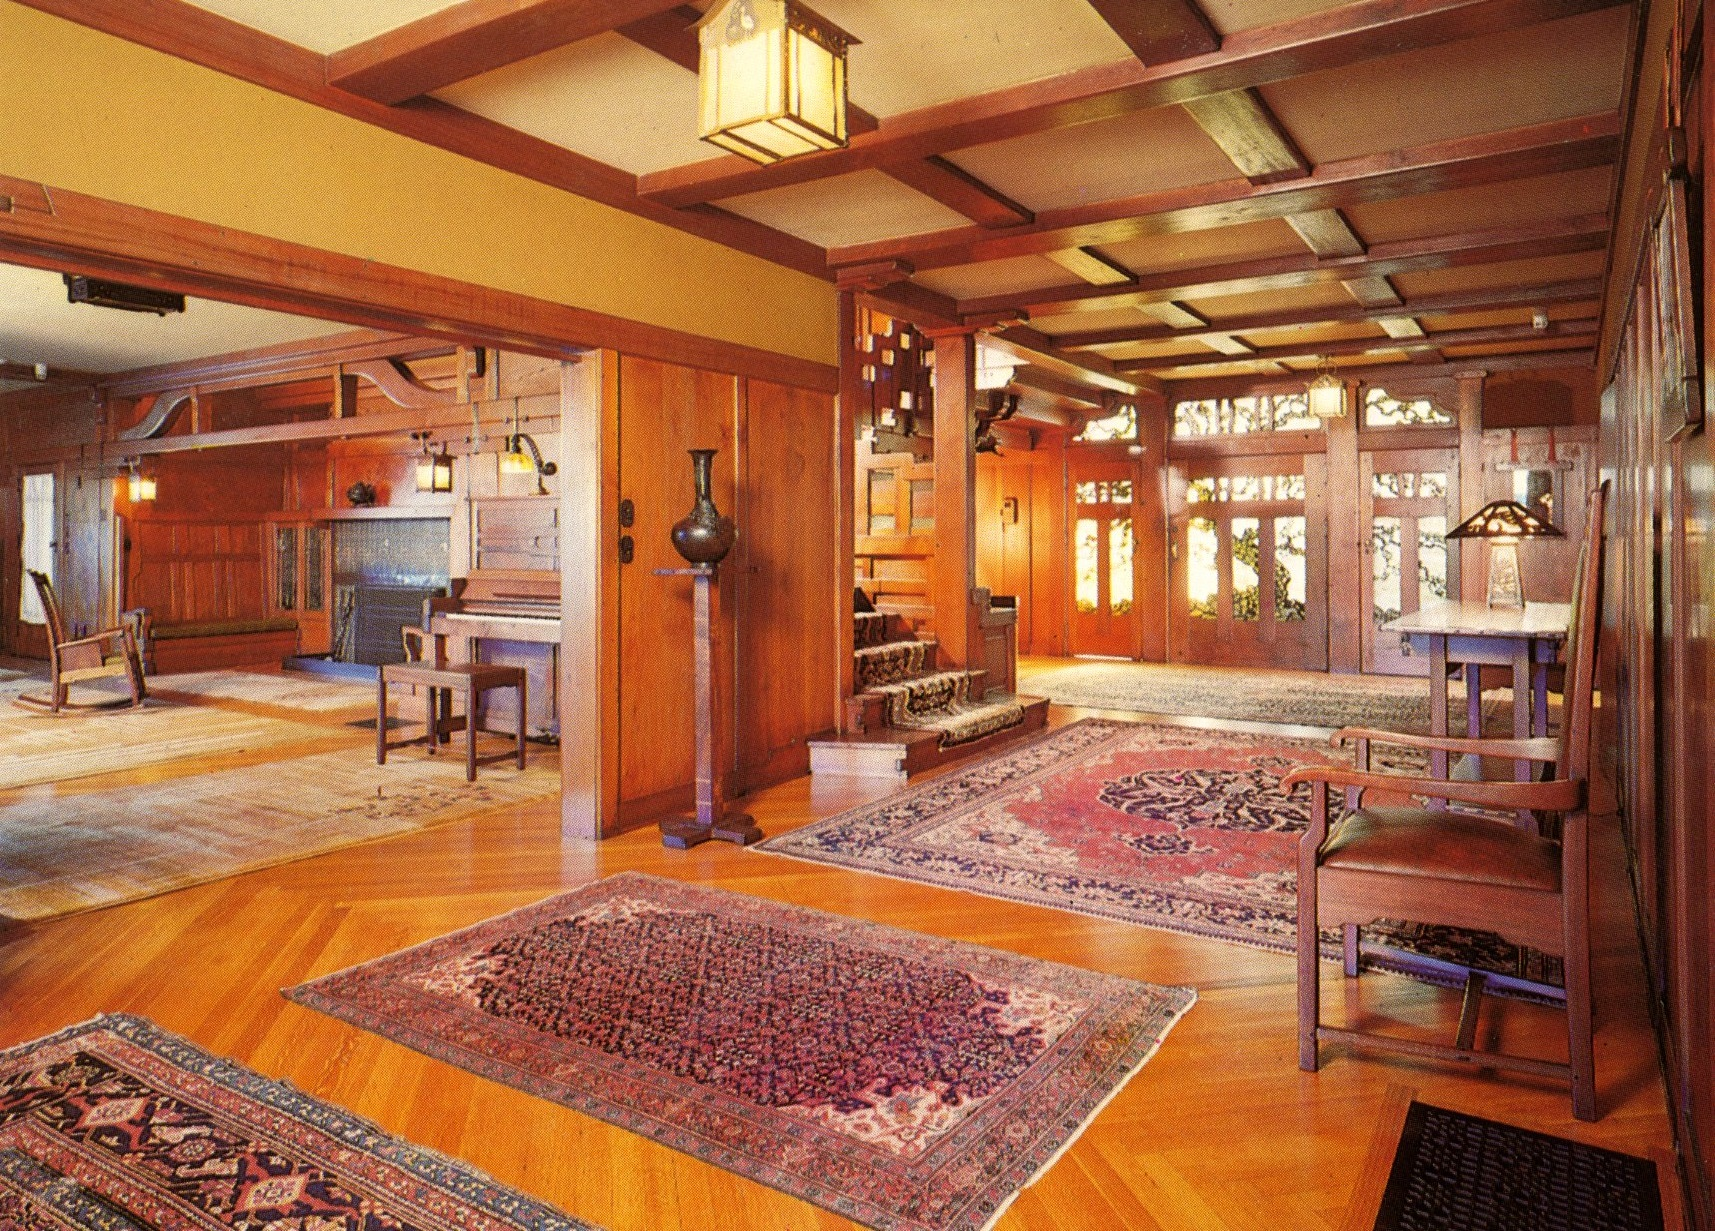 Interior View Of Gamble House. This Is A Postcard I Bought While At The  Gamble Part 6